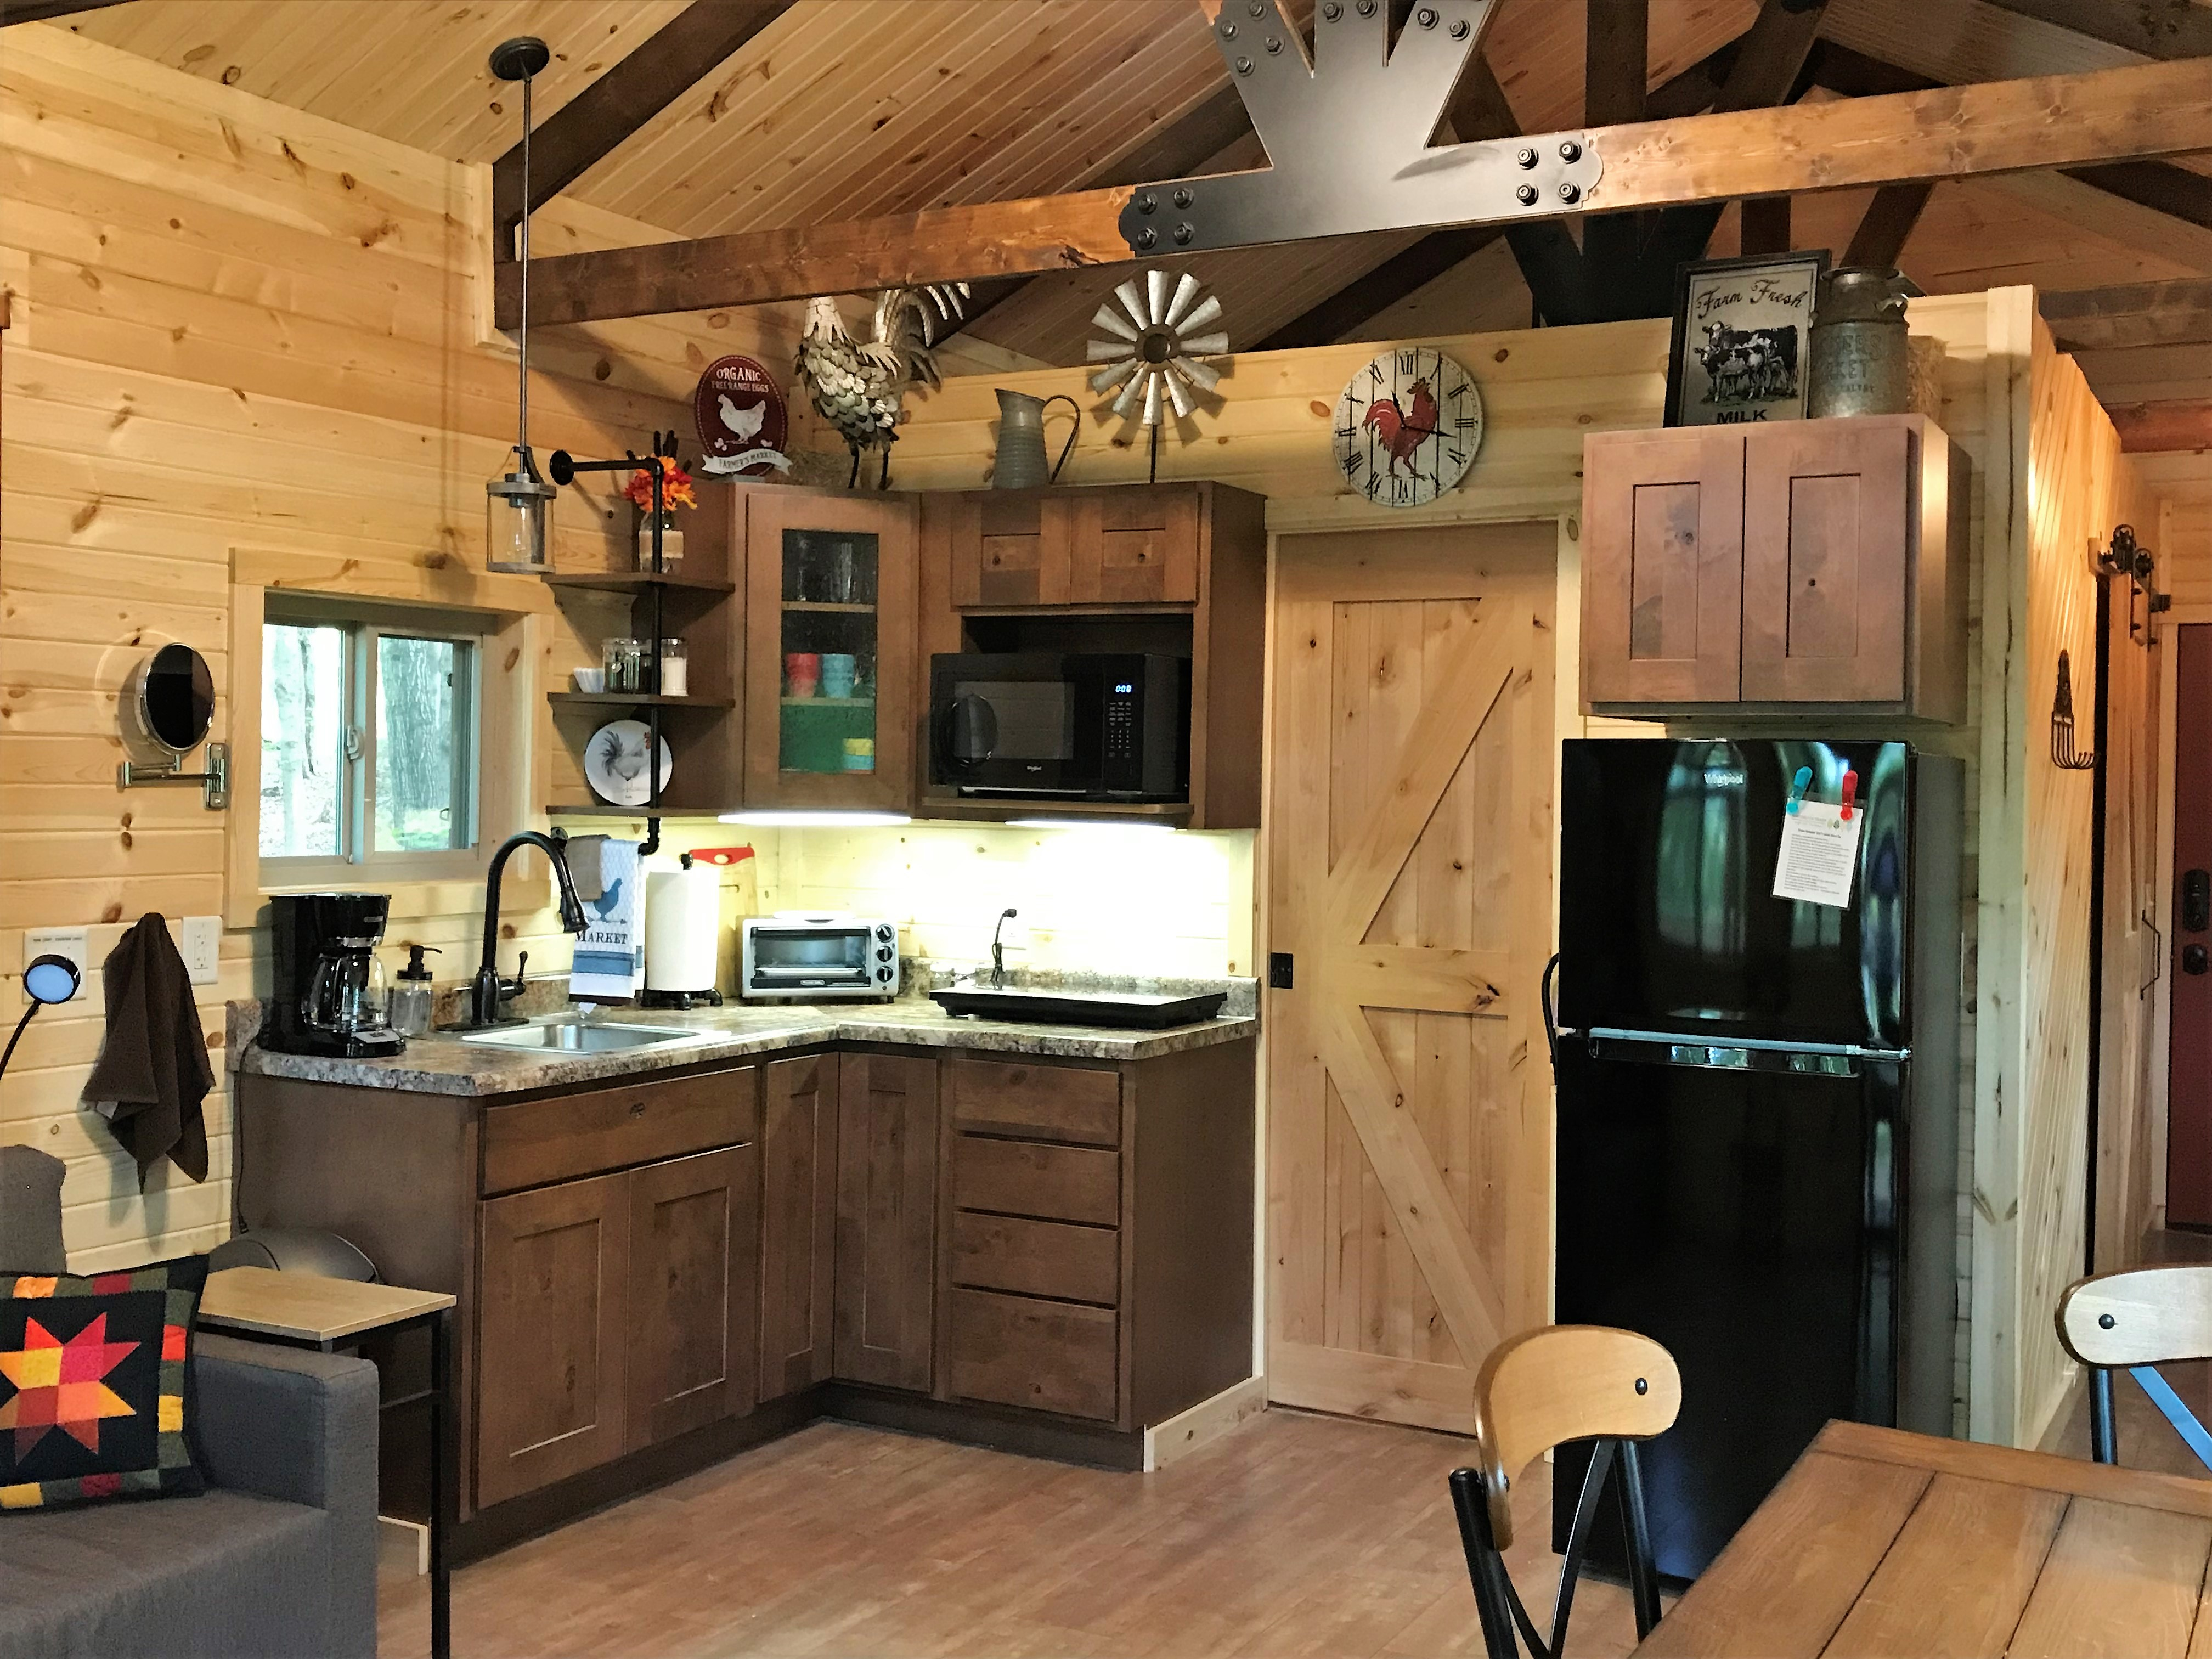 kitchen area - Dishes, cookware and utensils are provided for your stay.